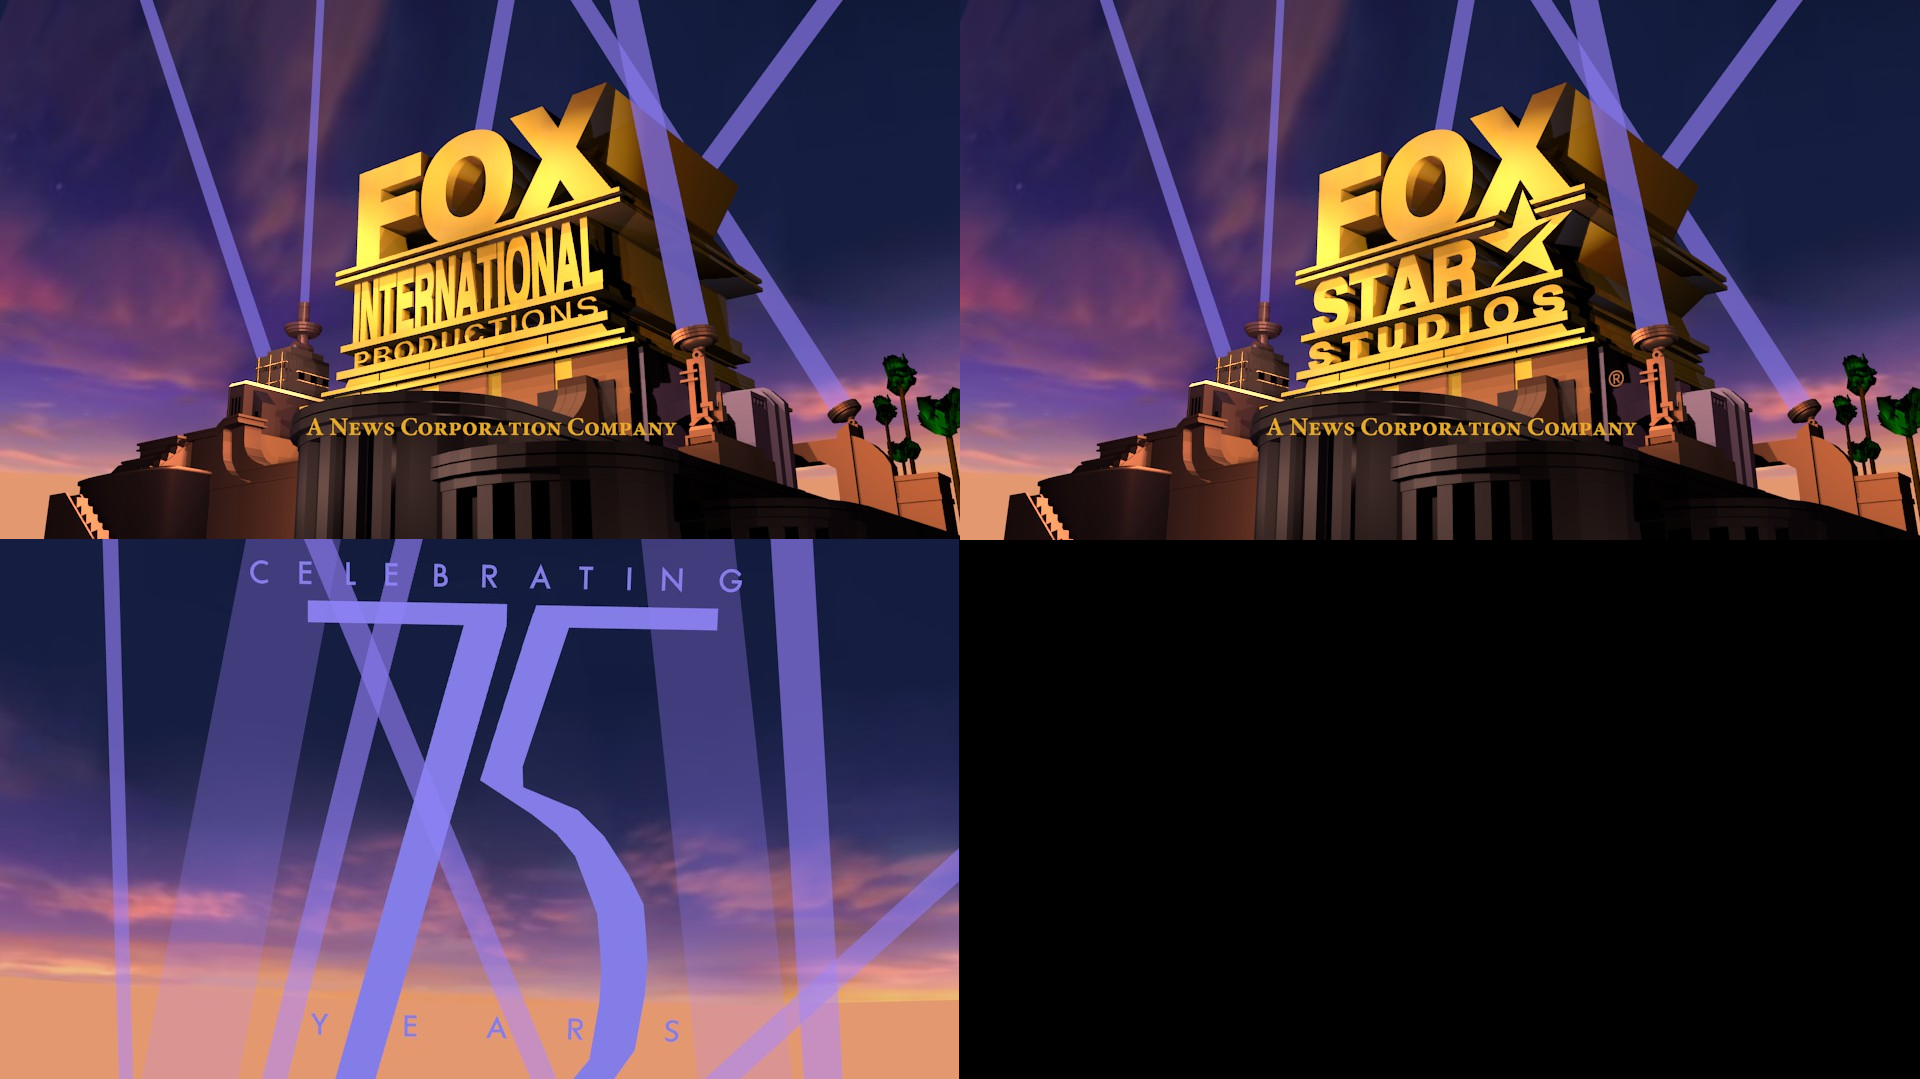 other related 2009 fox remakes  outdated 2  by logomanseva 20th anniversary logo templates 20th anniversary logo templates